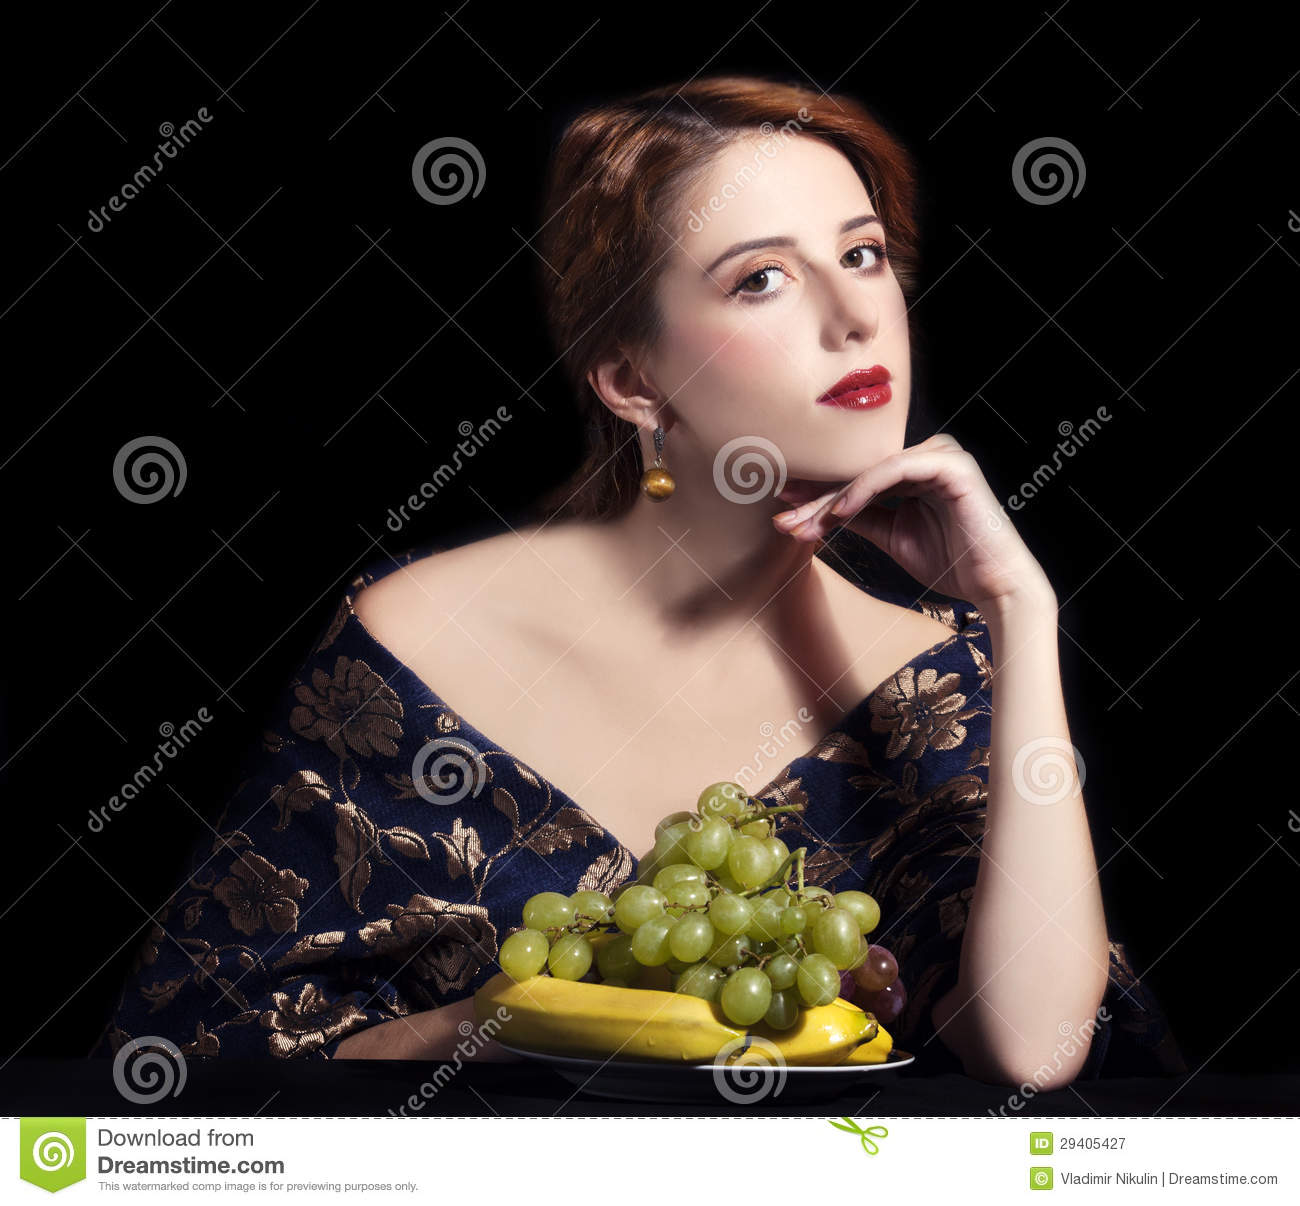 Royalty Free Stock Photography: Portrait of beautiful rich women with ...: dreamstime.com/royalty-free-stock-photography-portrait-beautiful...